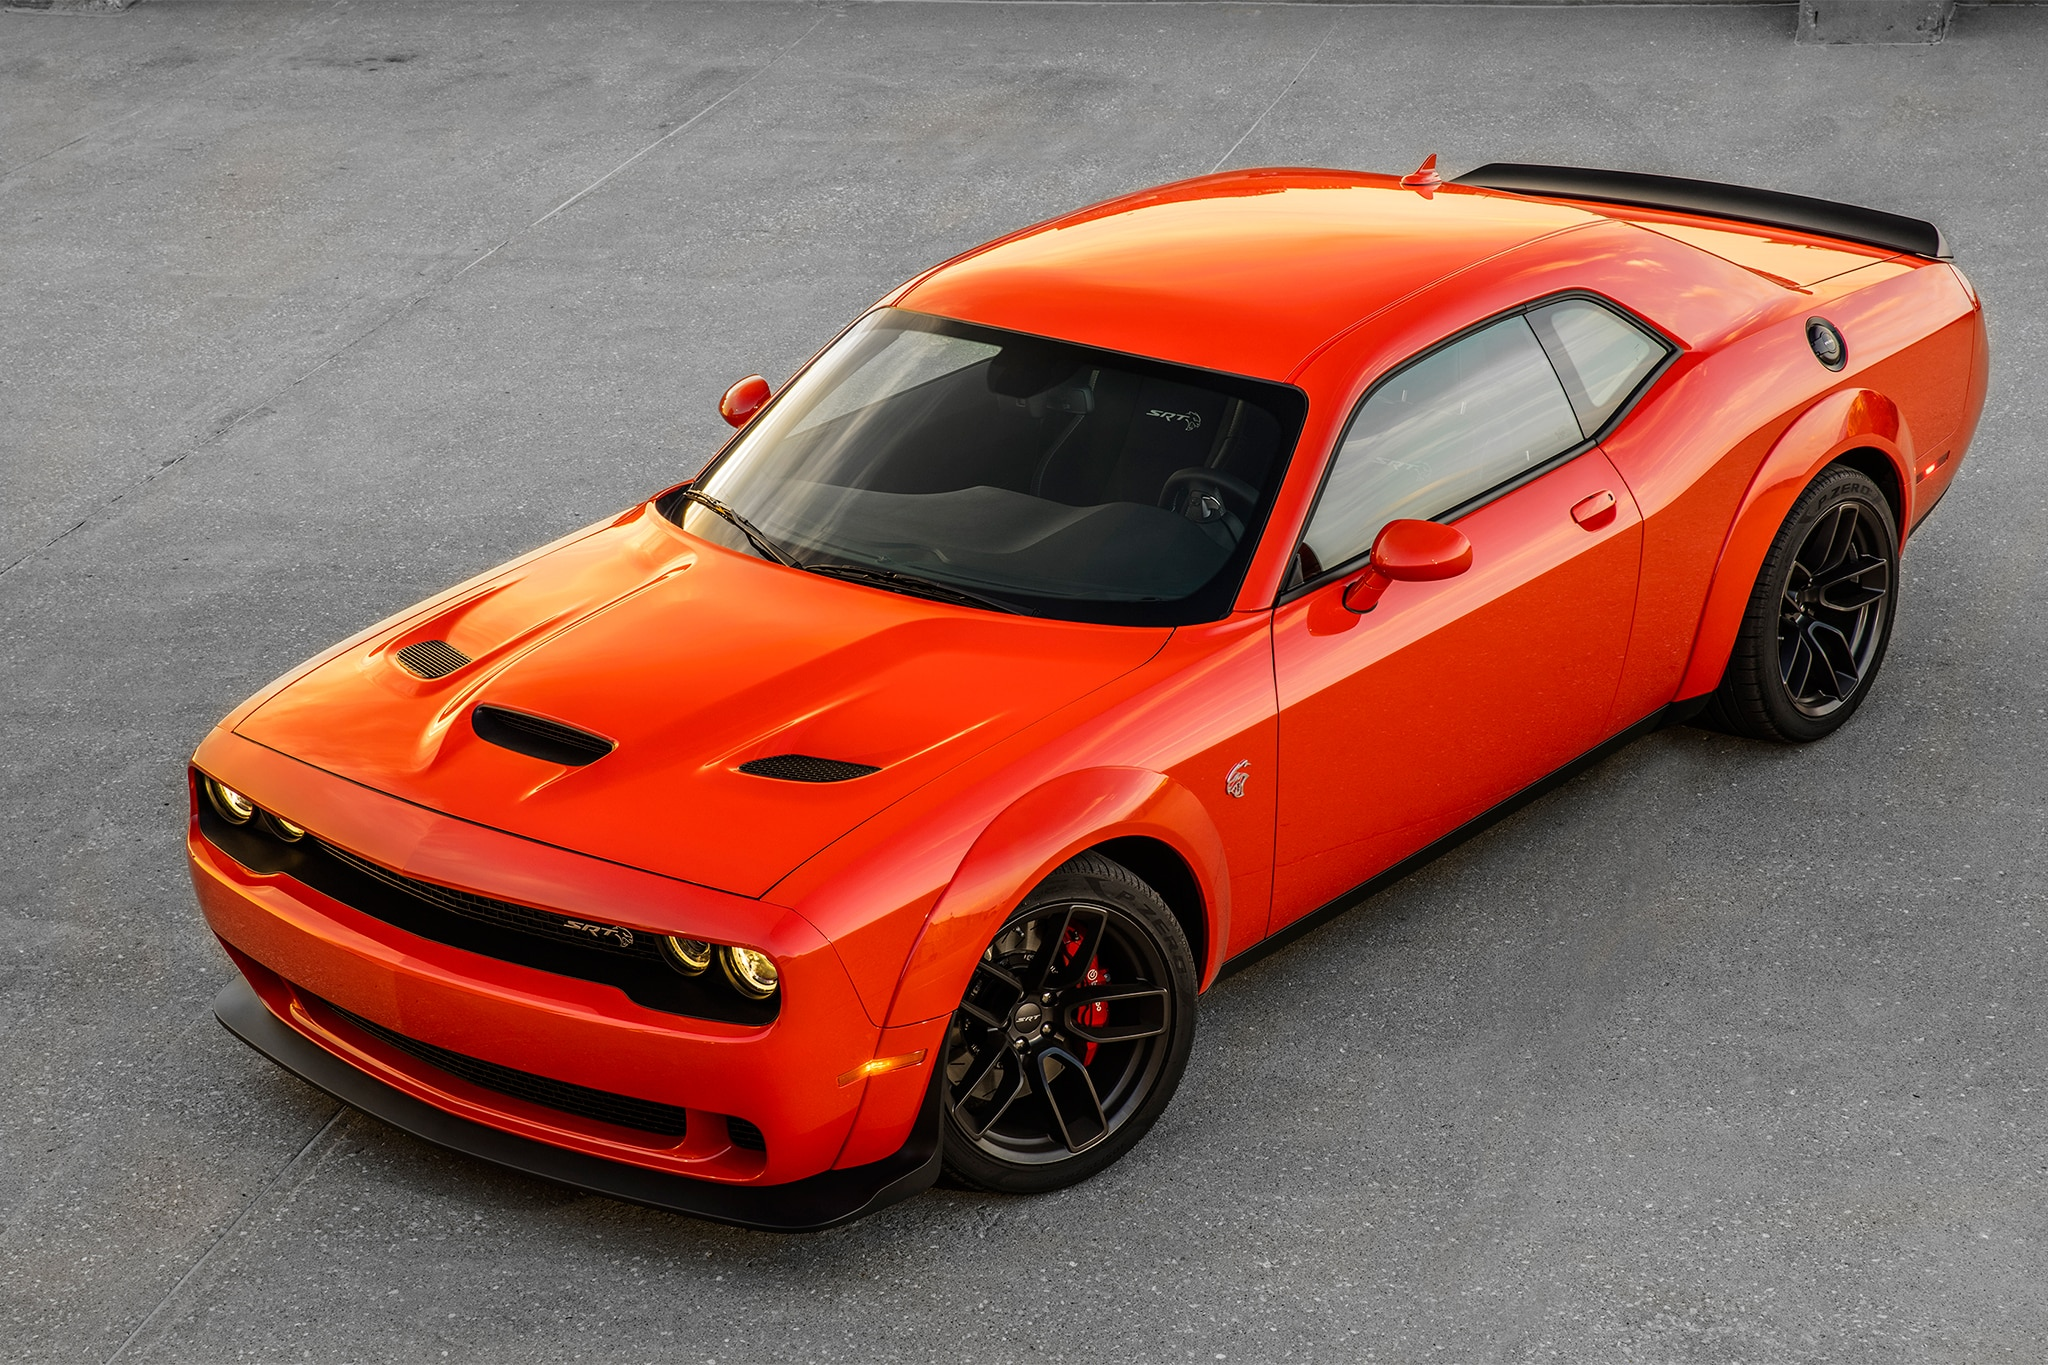 Hellcat Challenger For Sale >> 2018 Dodge Challenger SRT Hellcat Widebody Track Drive Review | Automobile Magazine